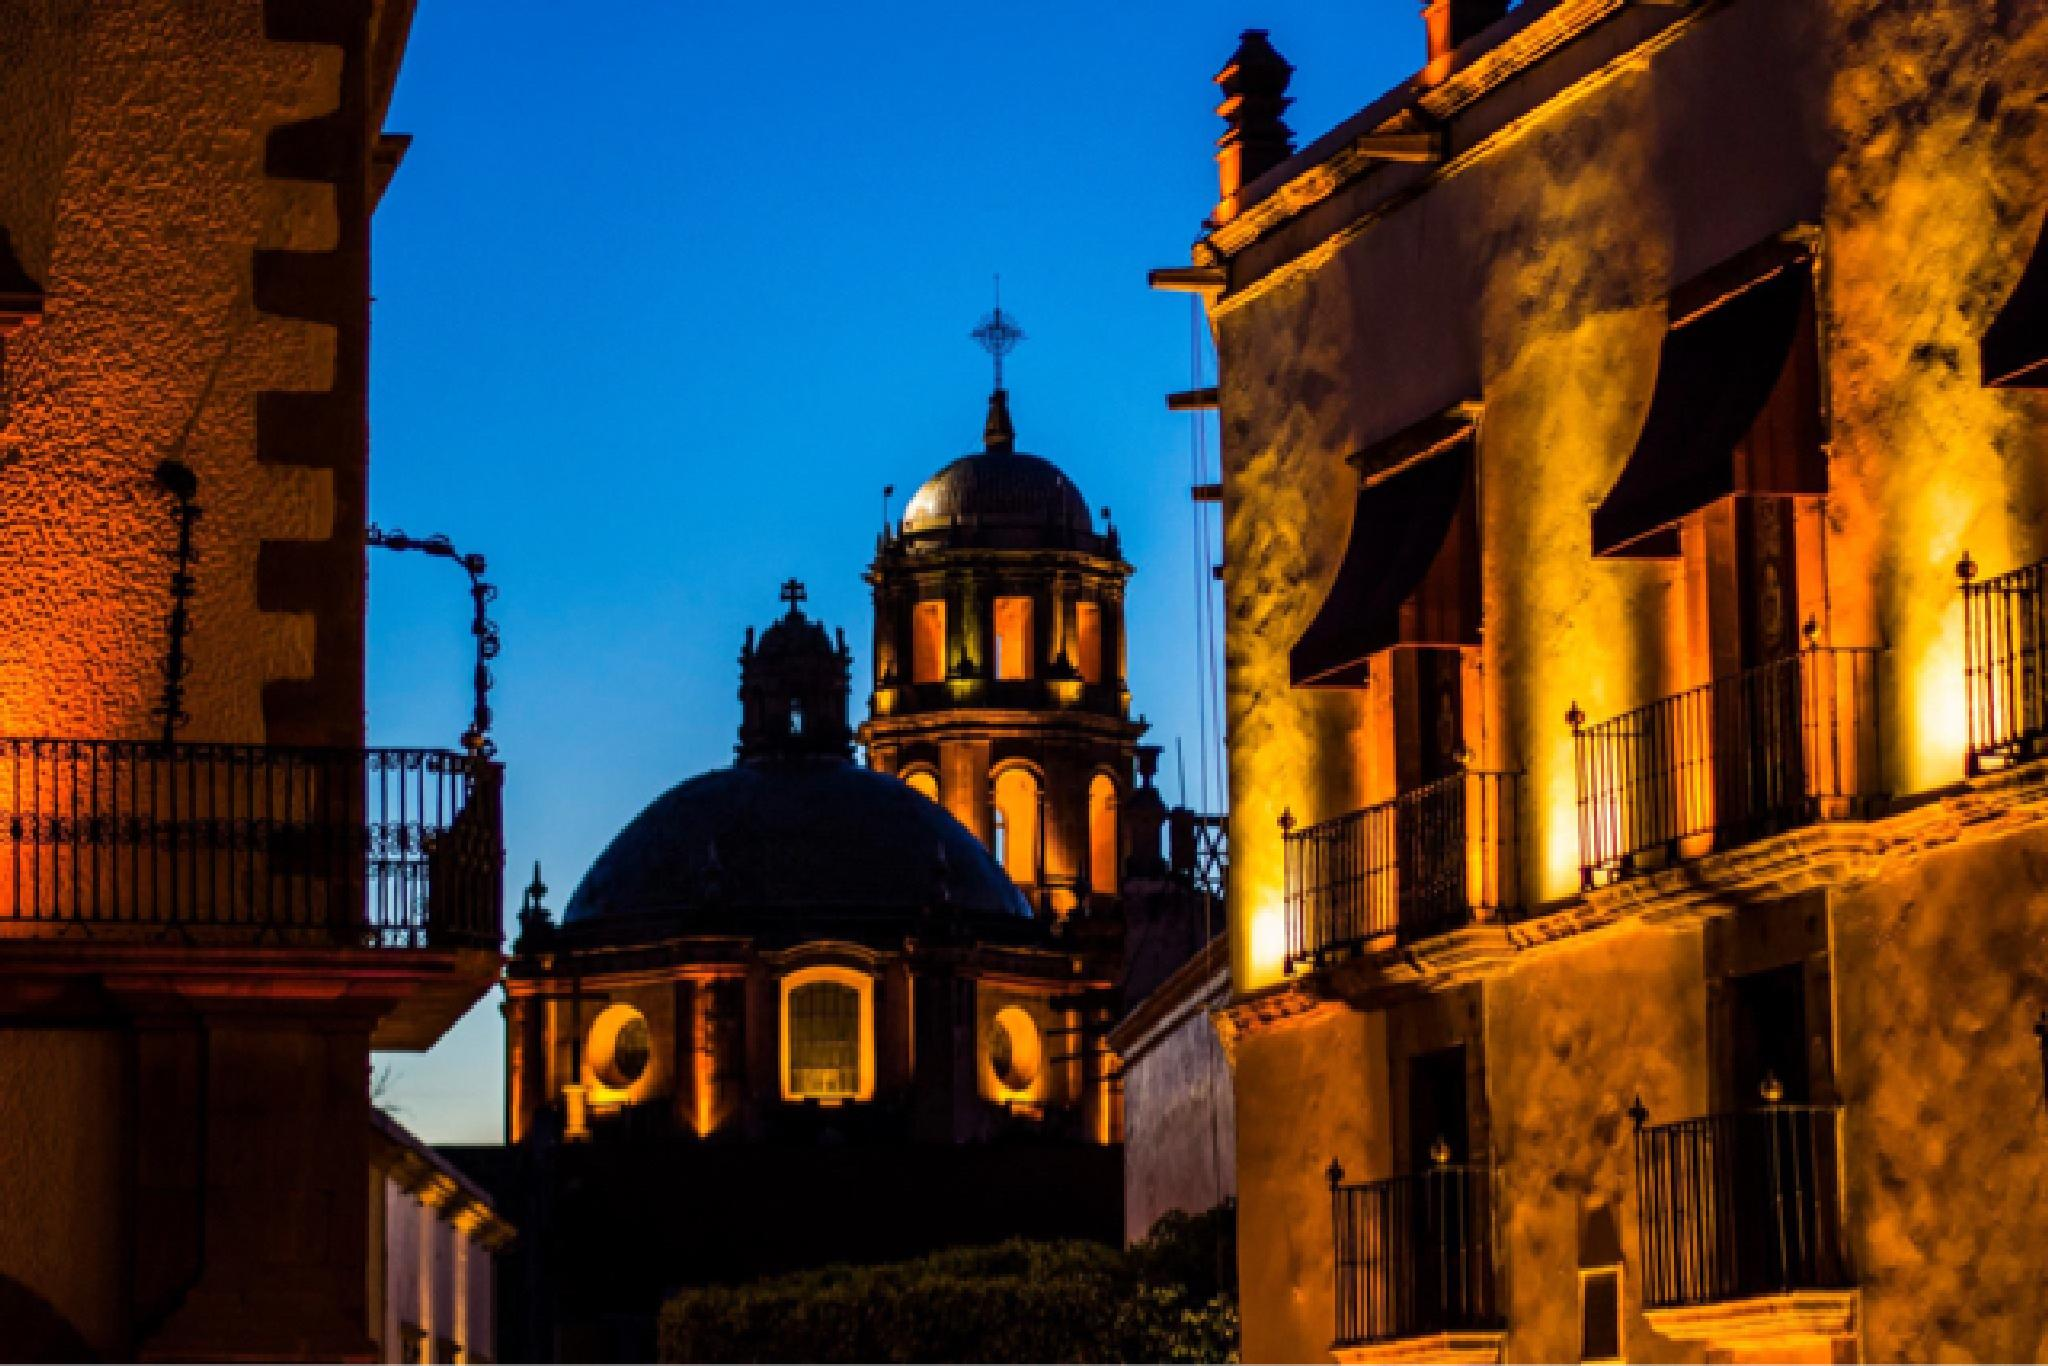 IMG_0879 by marioo30